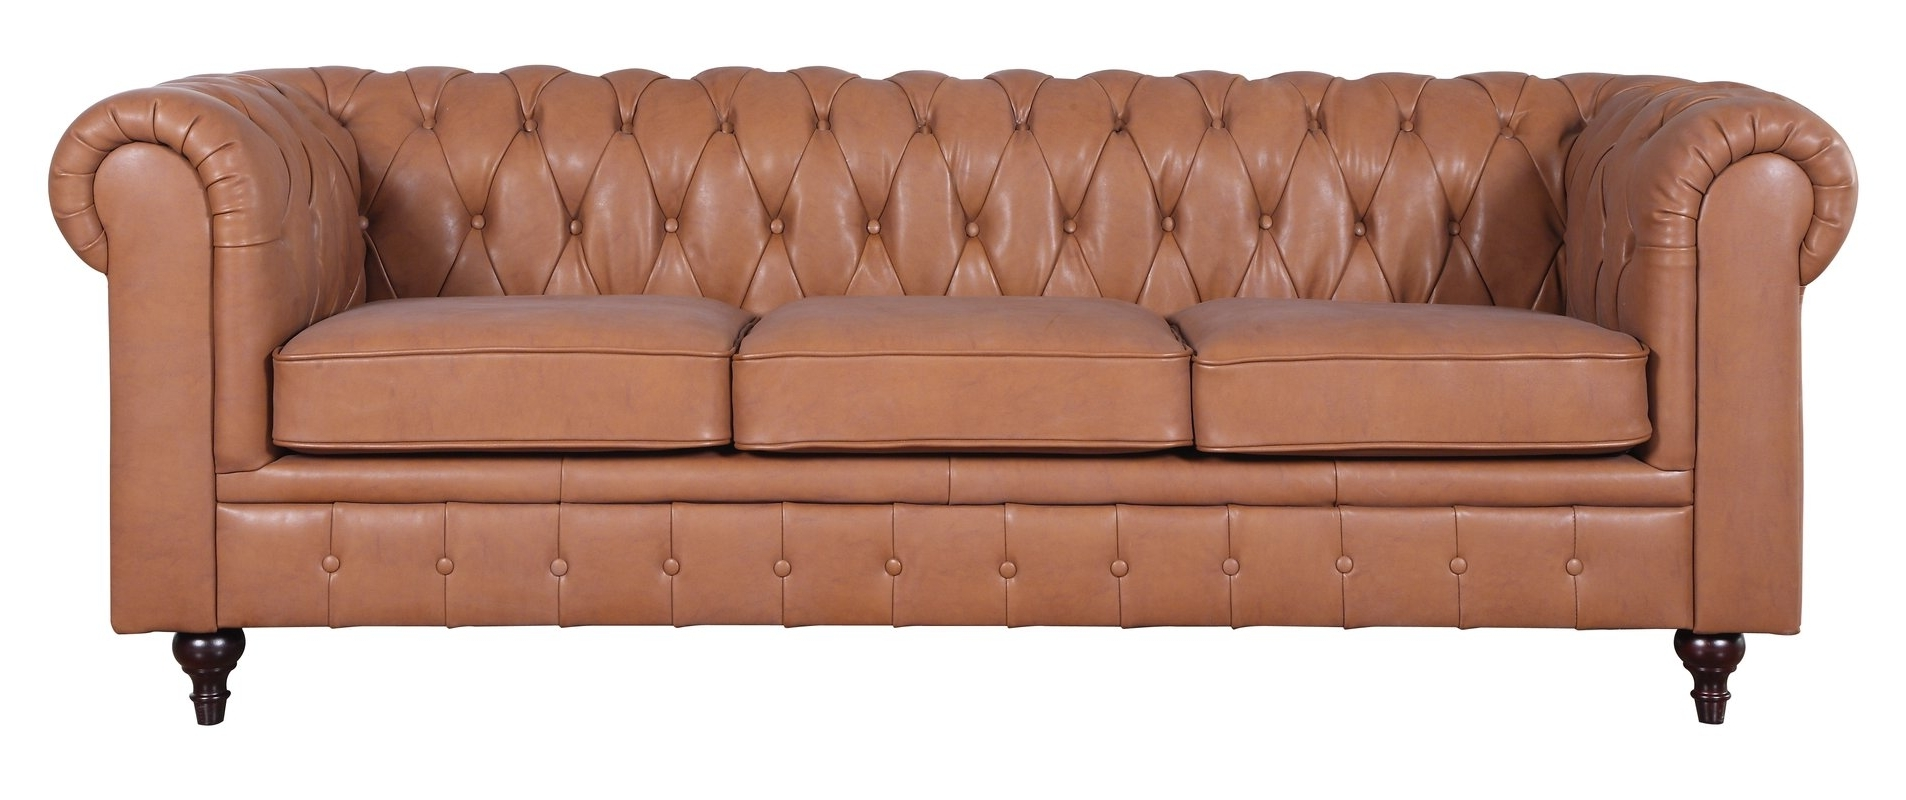 Widely Used Tufted Leather Chesterfield Sofas With Darby Home Co Kacper Tufted Leather Chesterfield Sofa & Reviews (View 9 of 20)